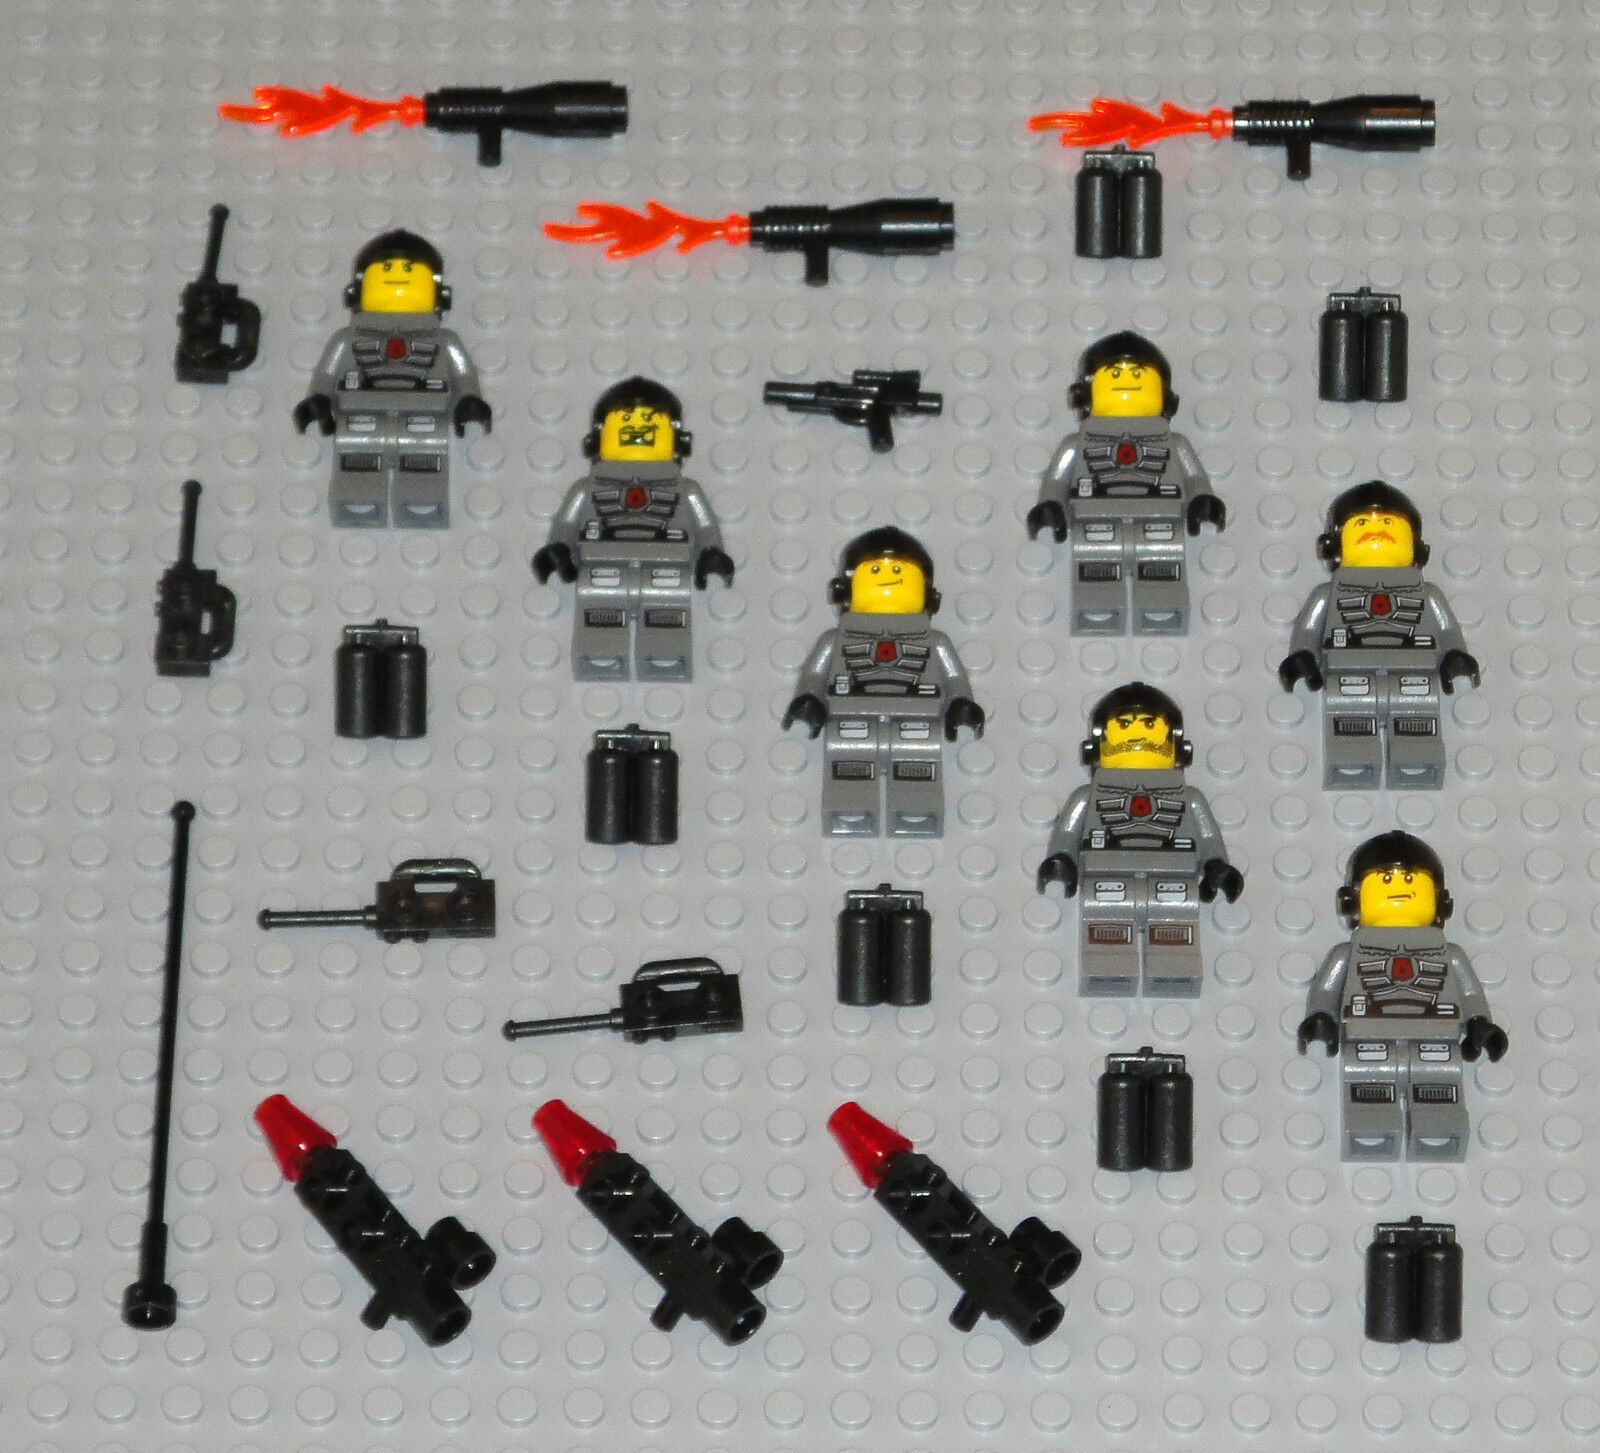 LEGO Minifigures 7 Space Marines Army Army Army People Blasters Police Minifigs Halo Guys 9005d4